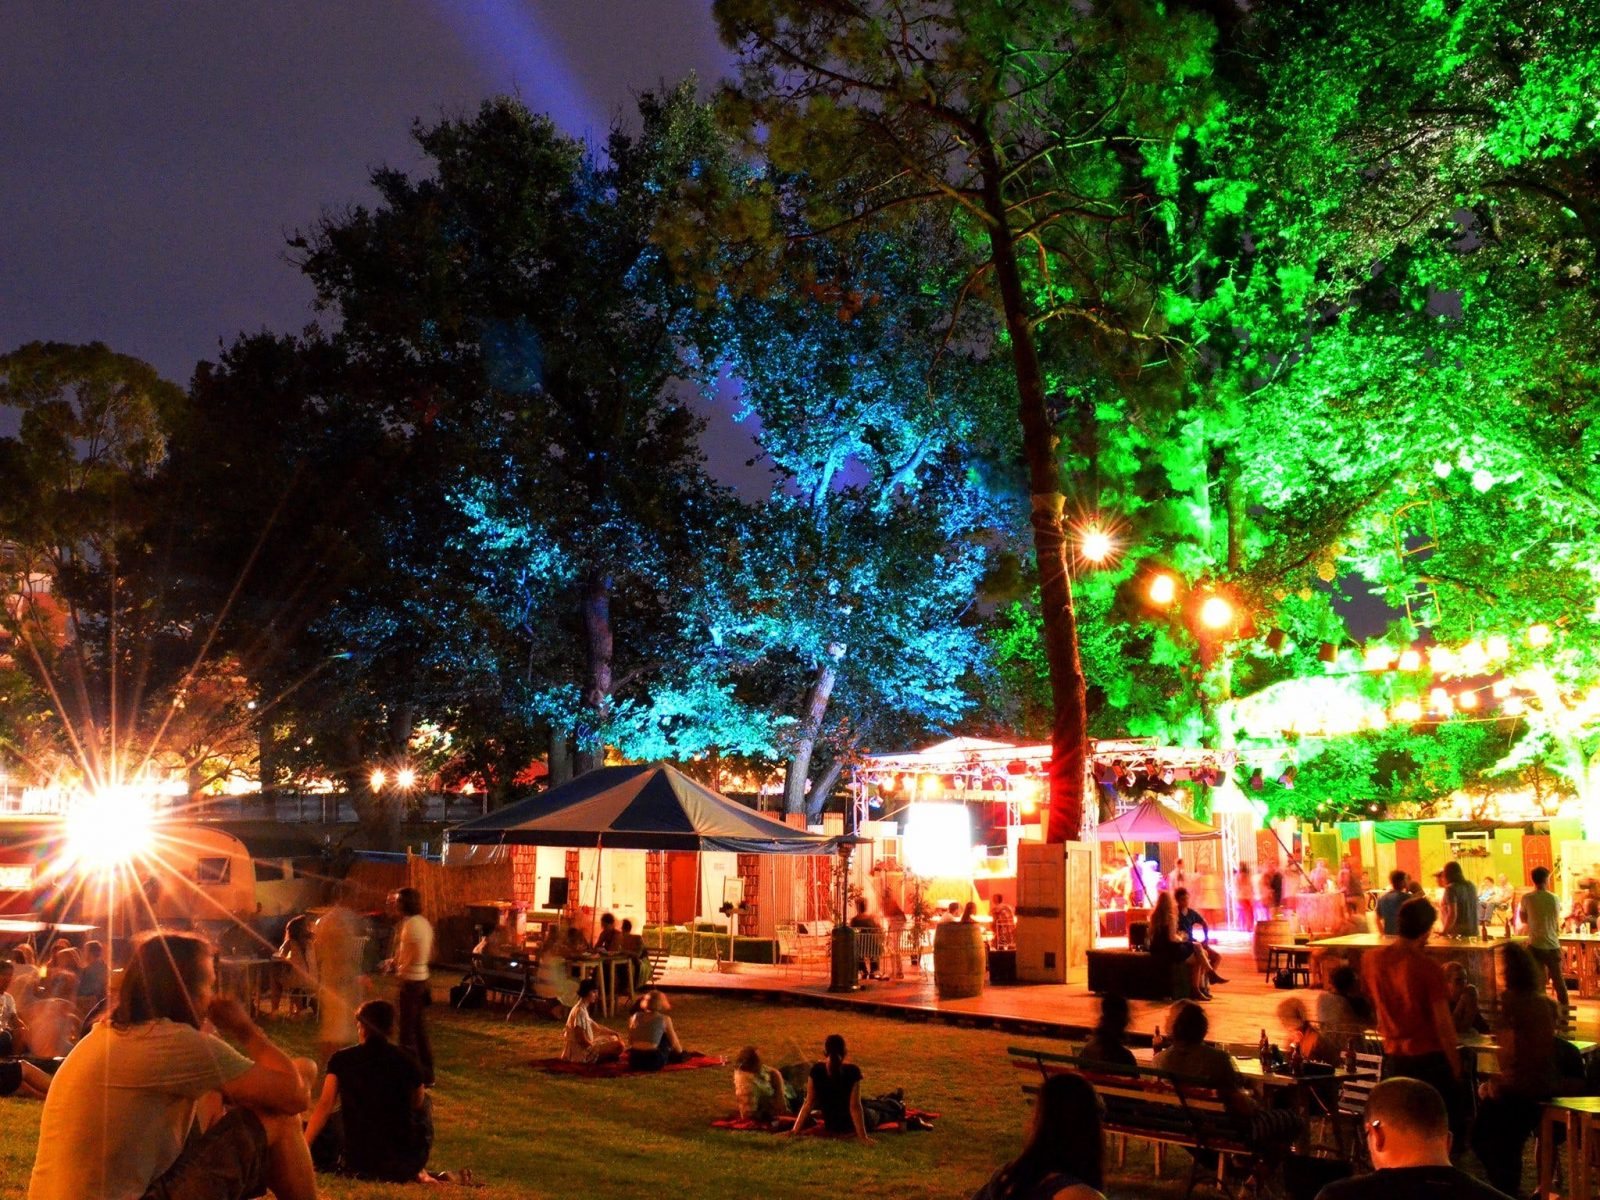 Adelaide Fringe Festival audiences enjoying the night in the Garden of Unearthly Delights